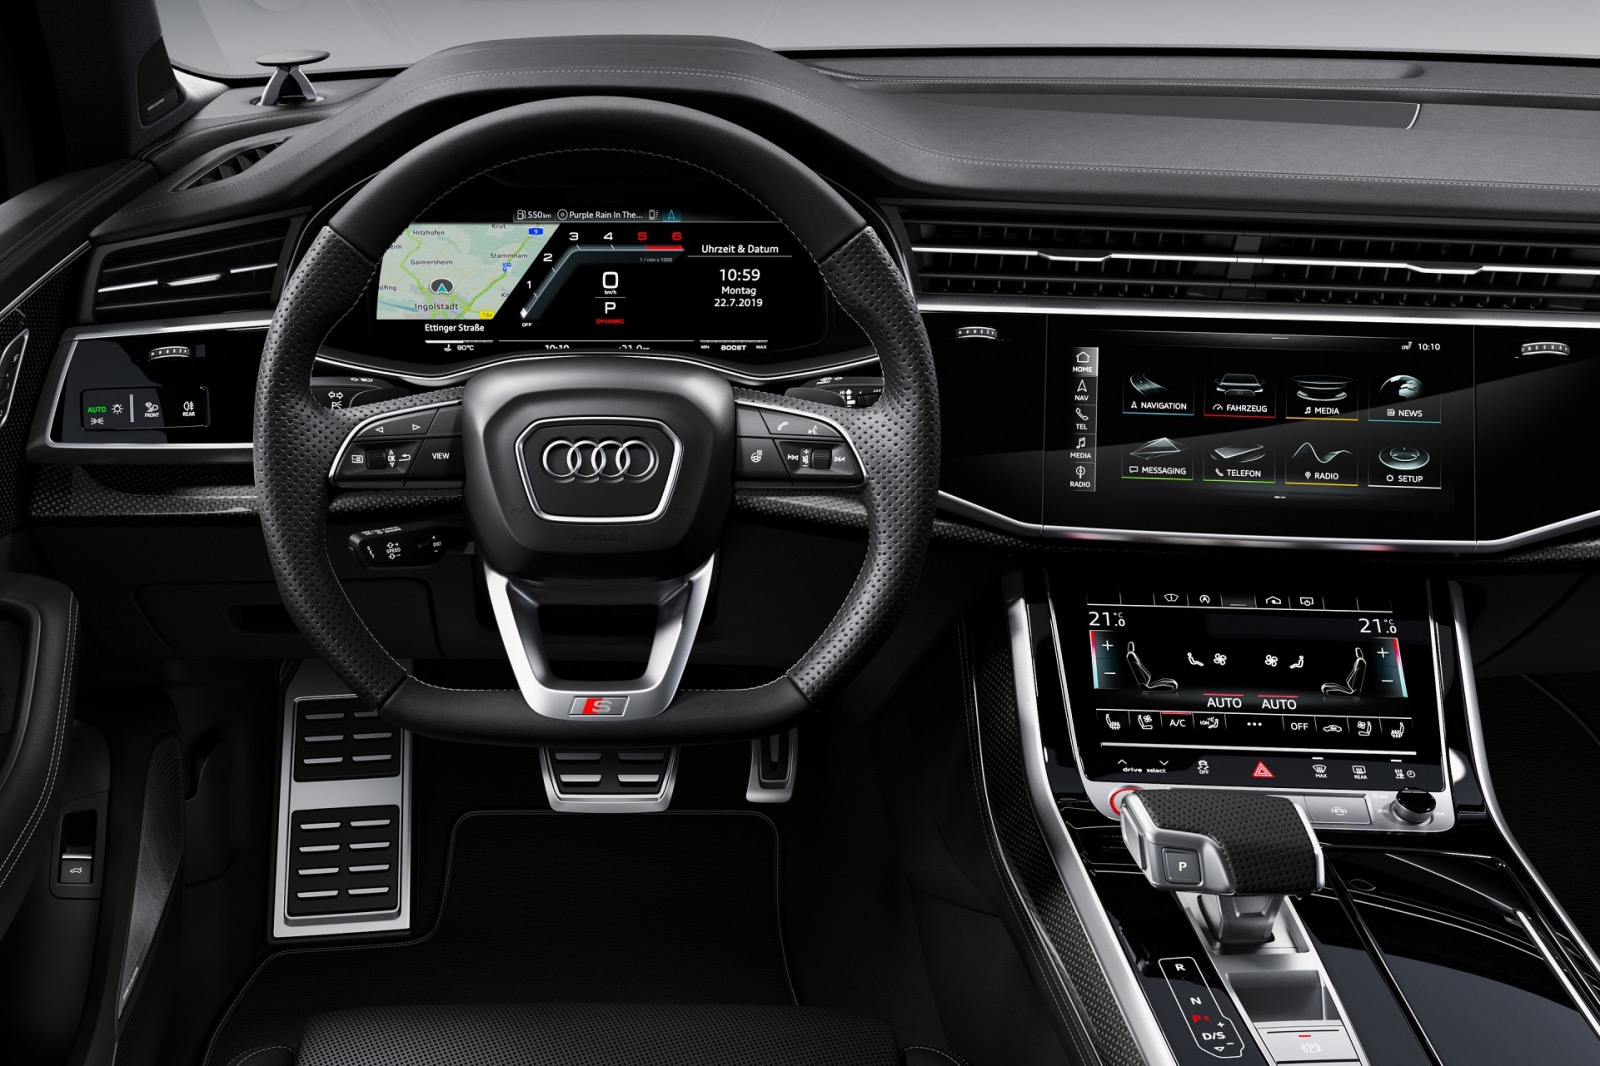 Audi Functions on Demand